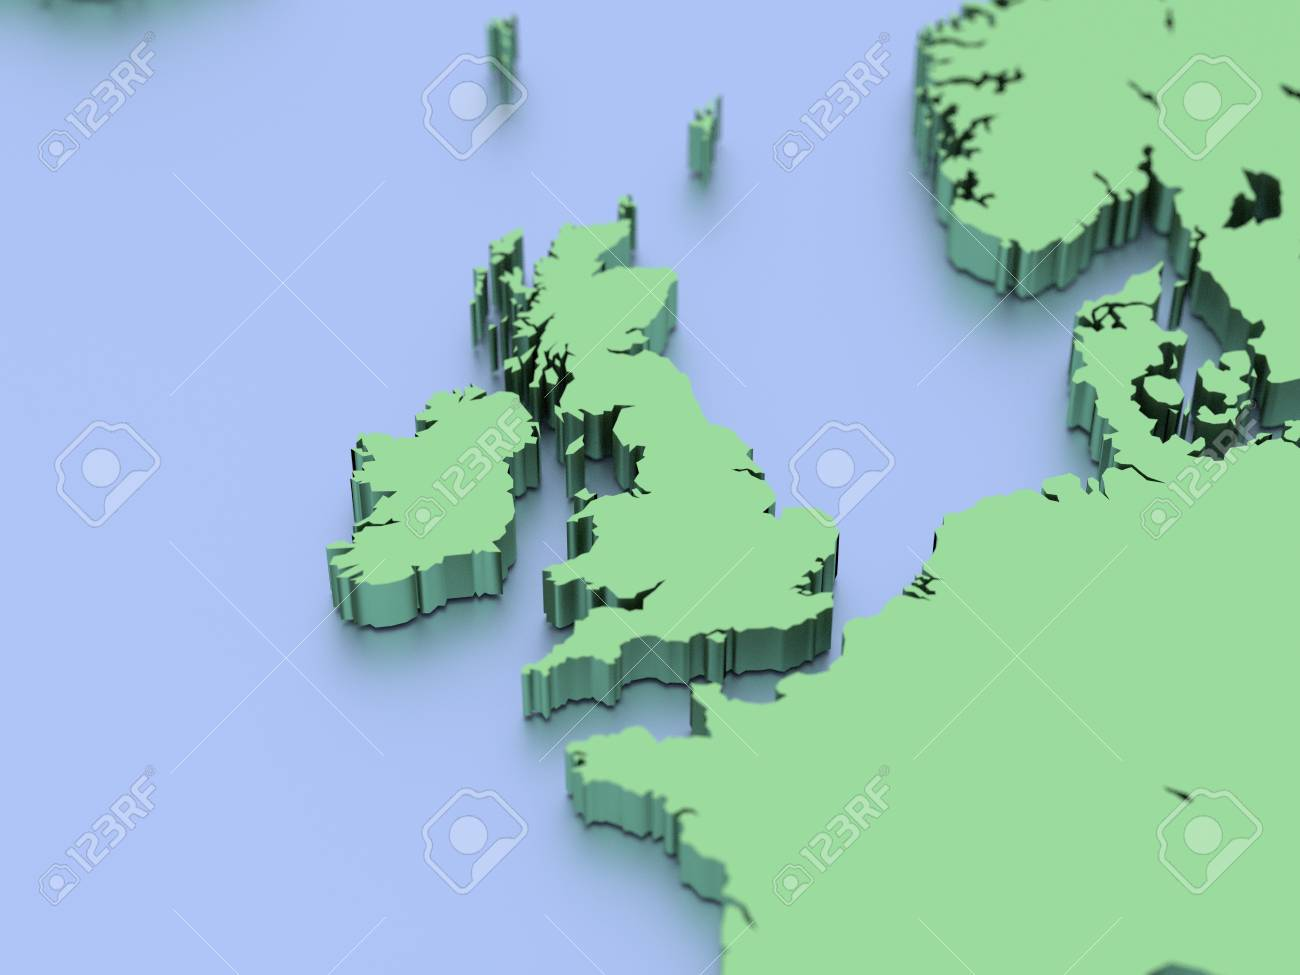 3d Map Of England.A 3d Rendered Map Of England